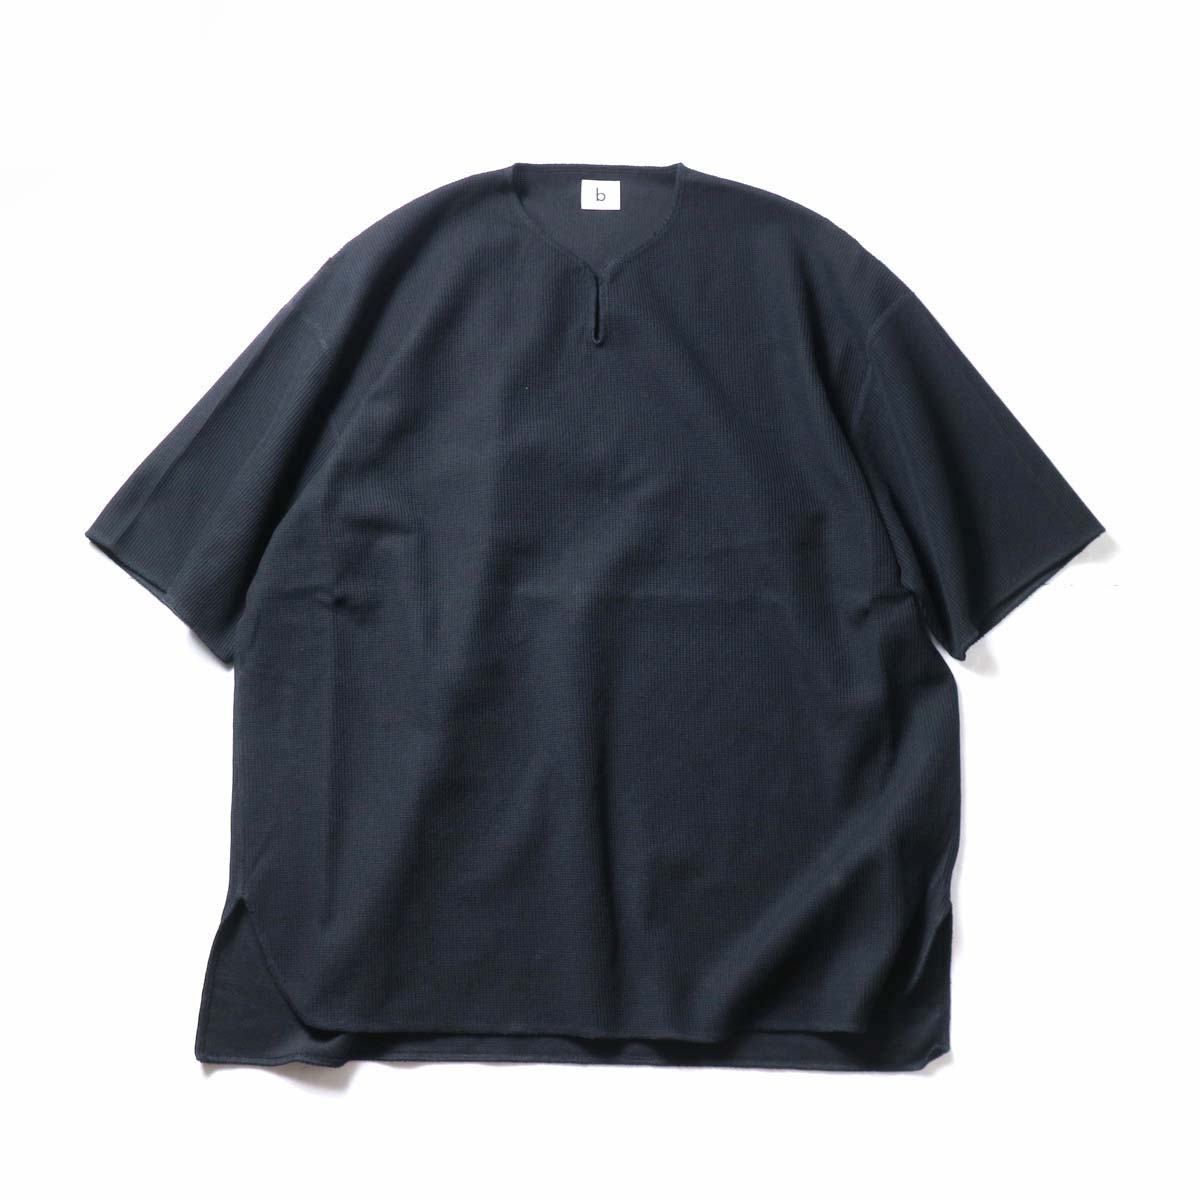 blurhms ROOTSTOCK / Rough&Smooth Thermal Over-neck (Black)